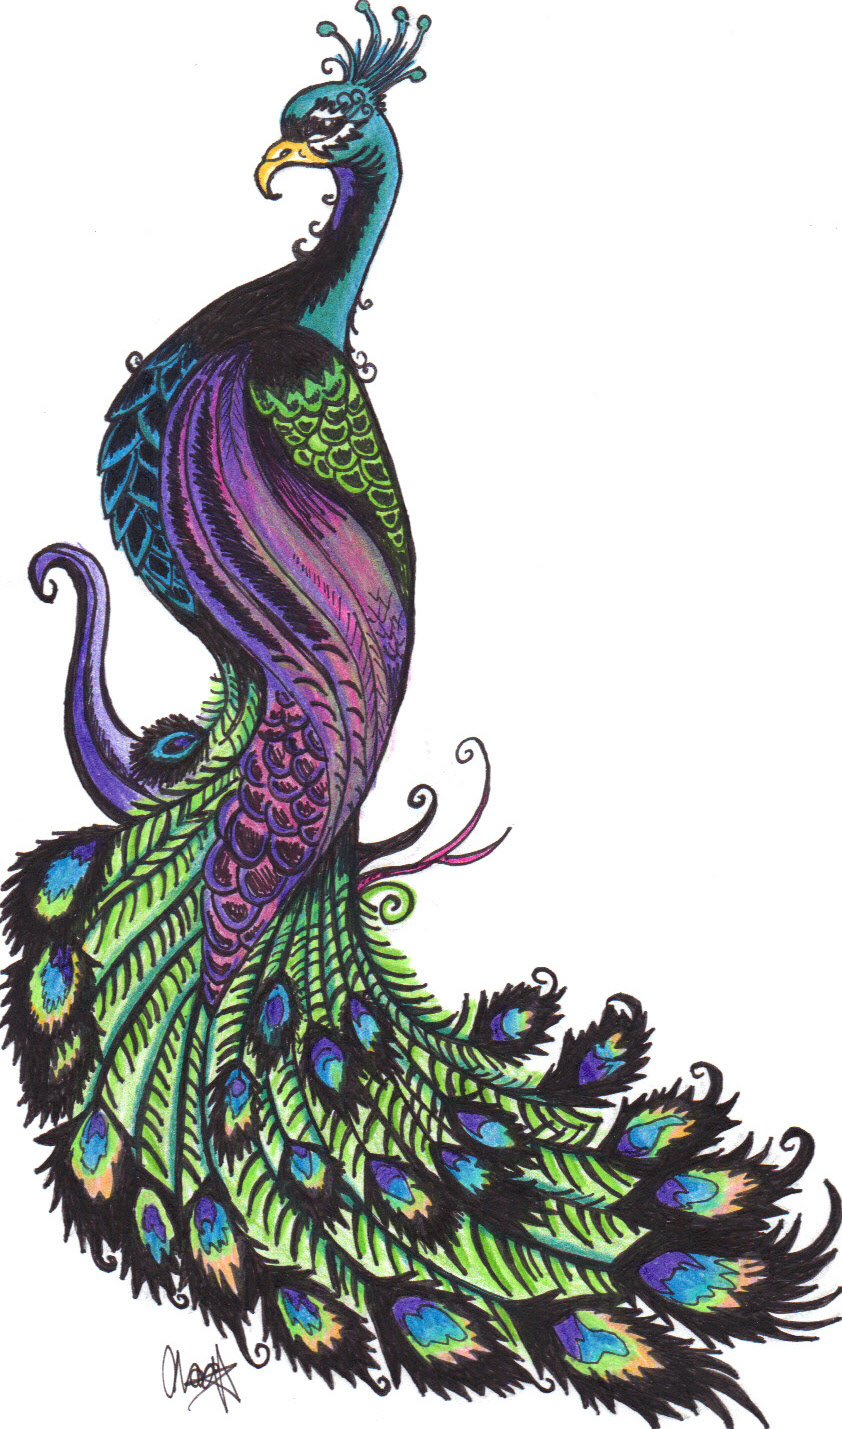 hight resolution of animals clipart peacock gallery free images